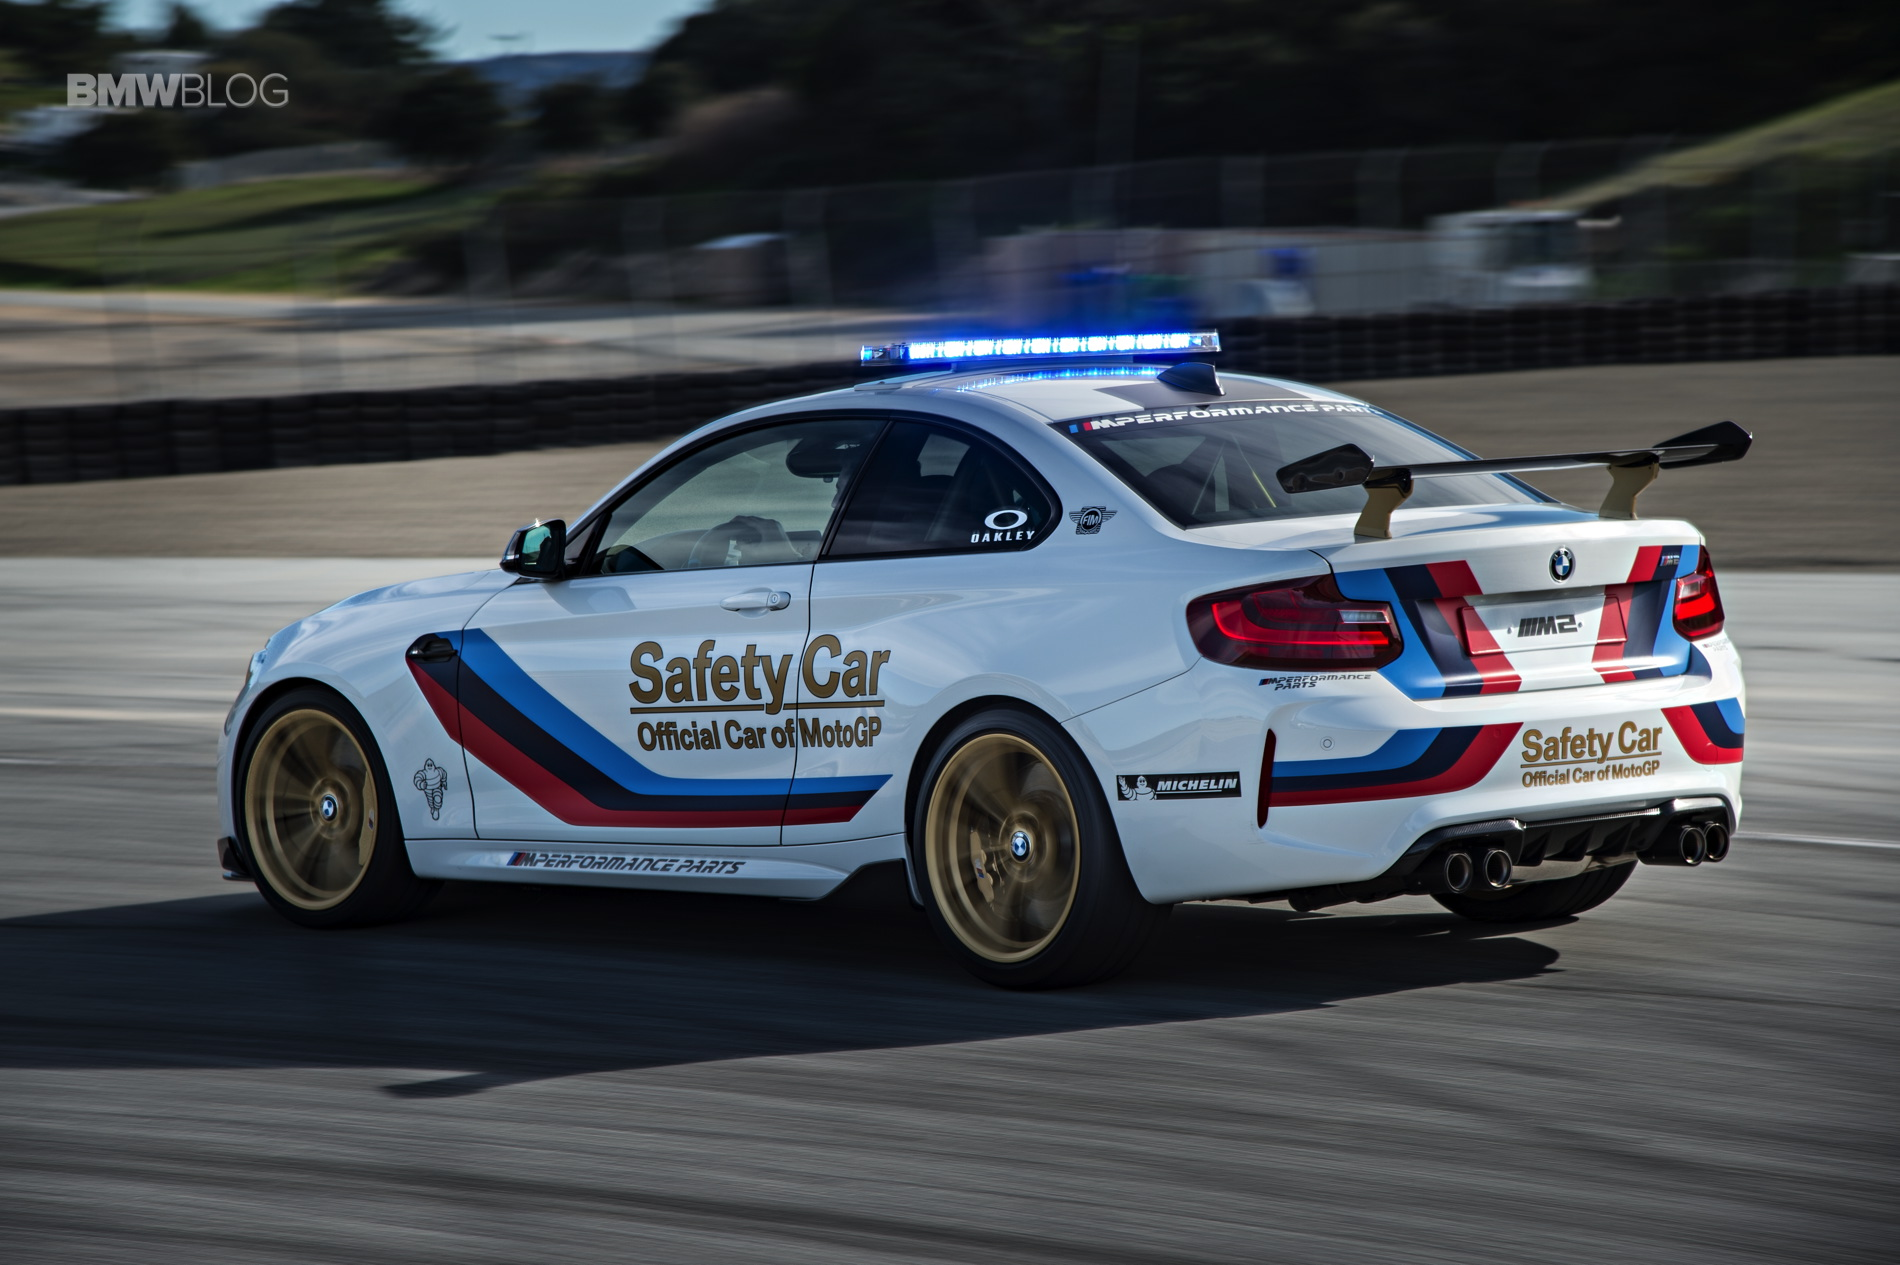 Bmw Replaces Audi As Official Safety Car Supplier For 2017